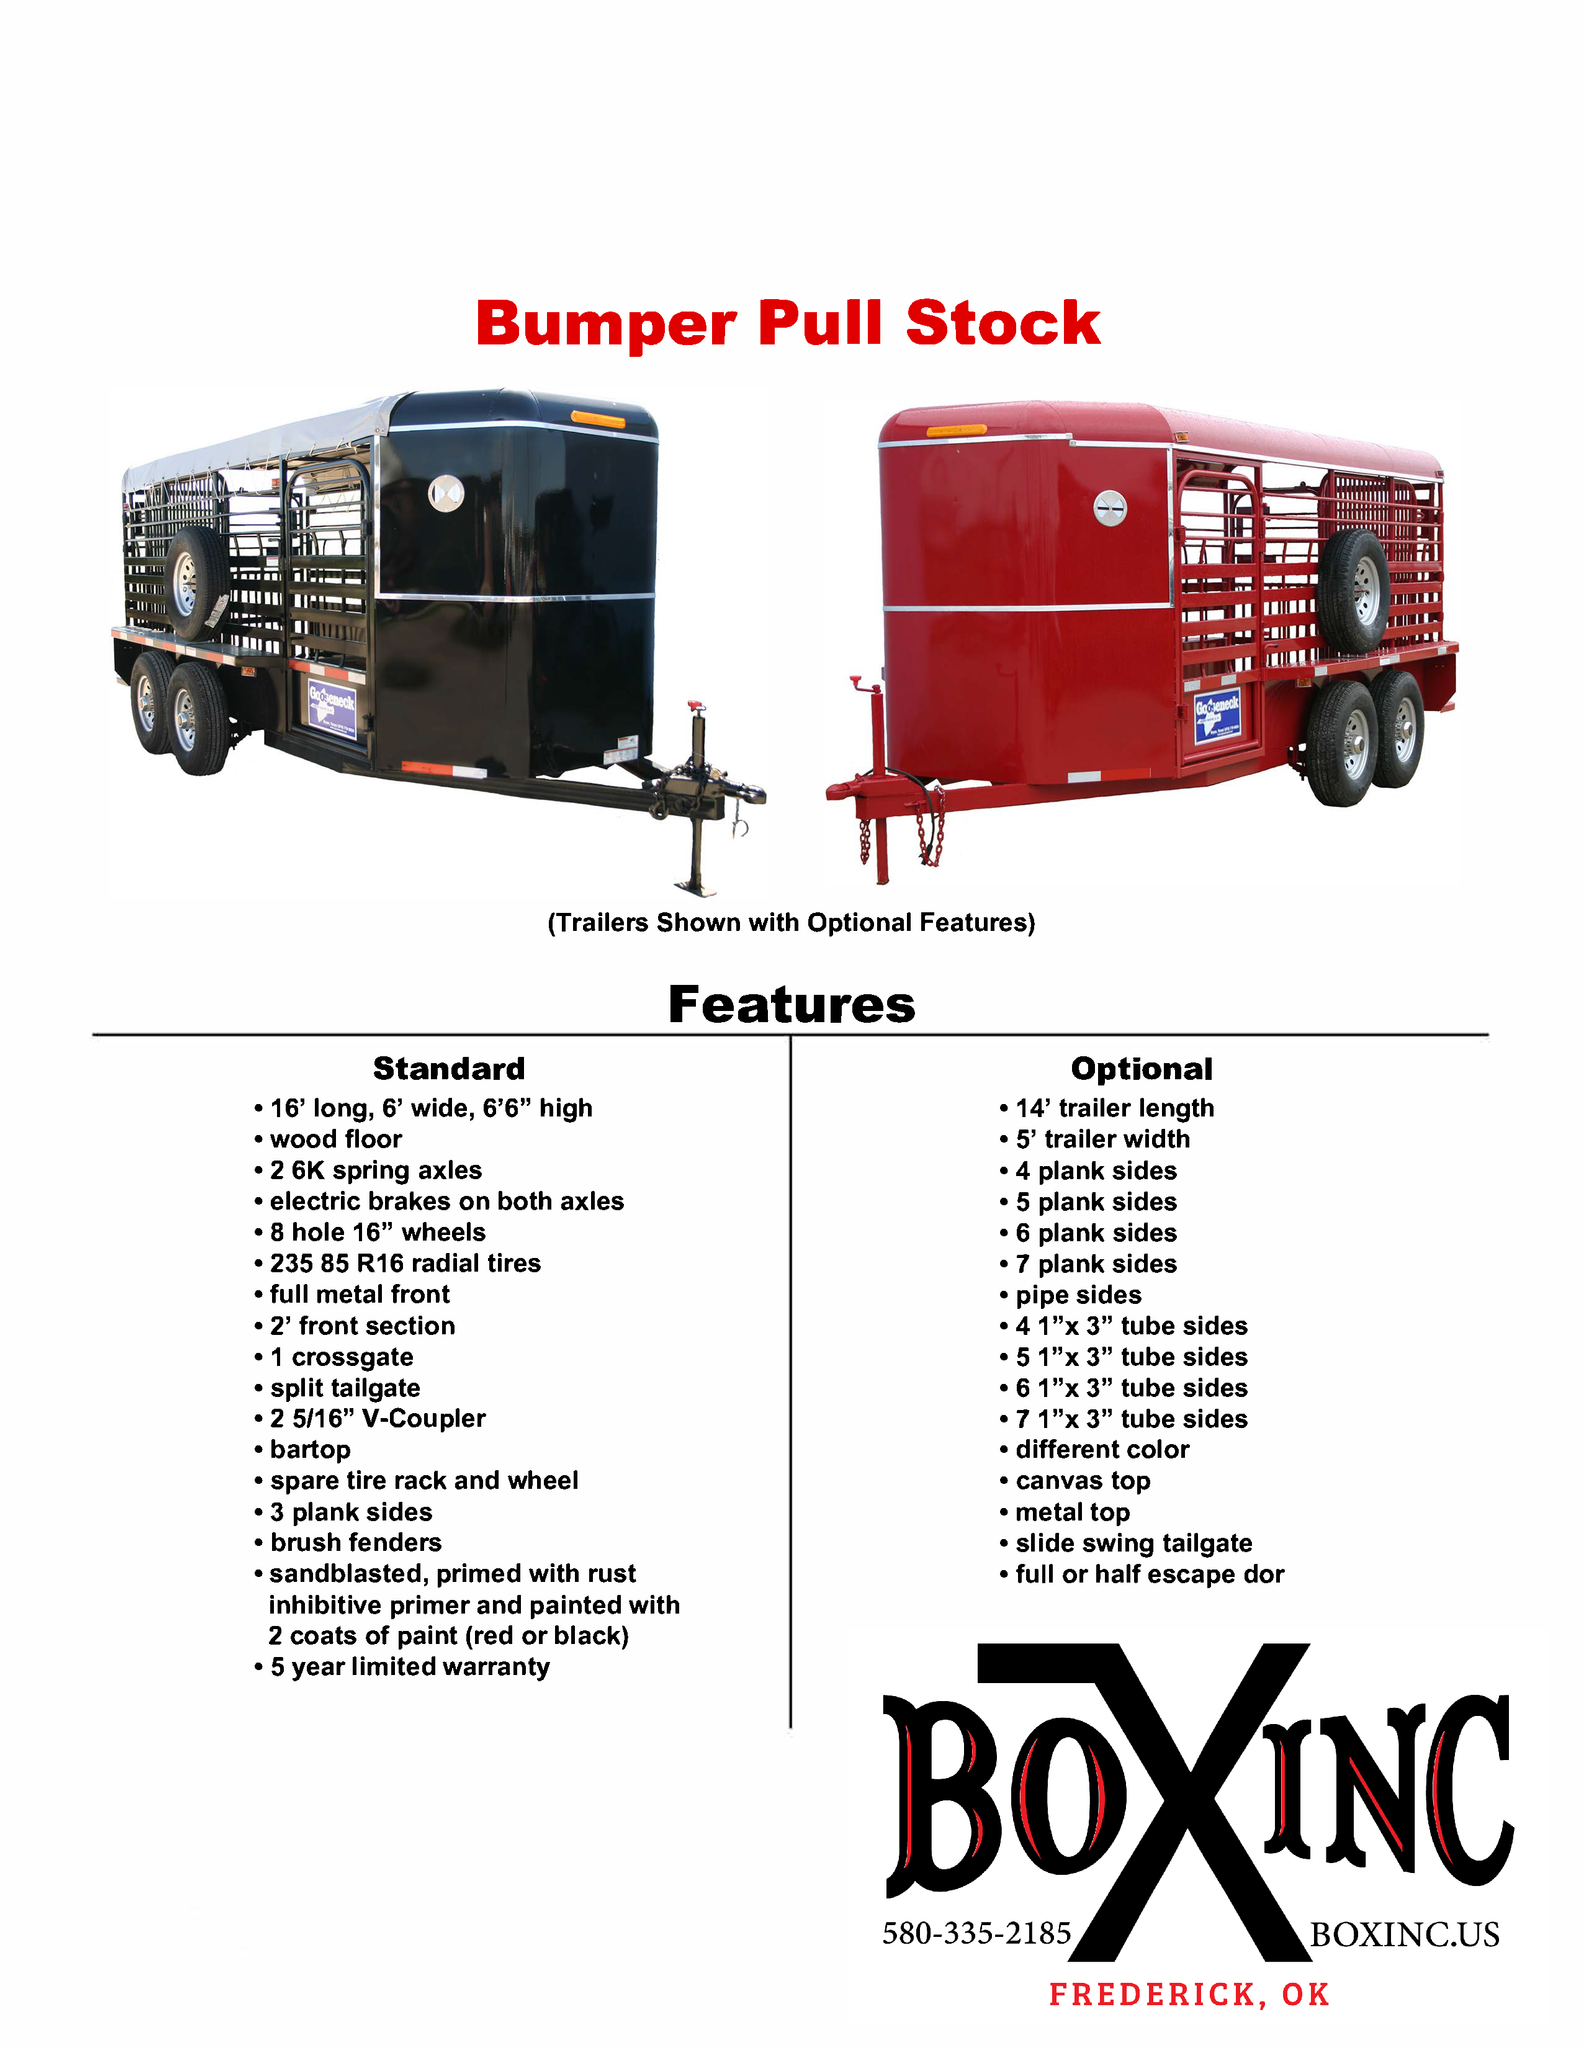 Bumper Pull Trailer Features